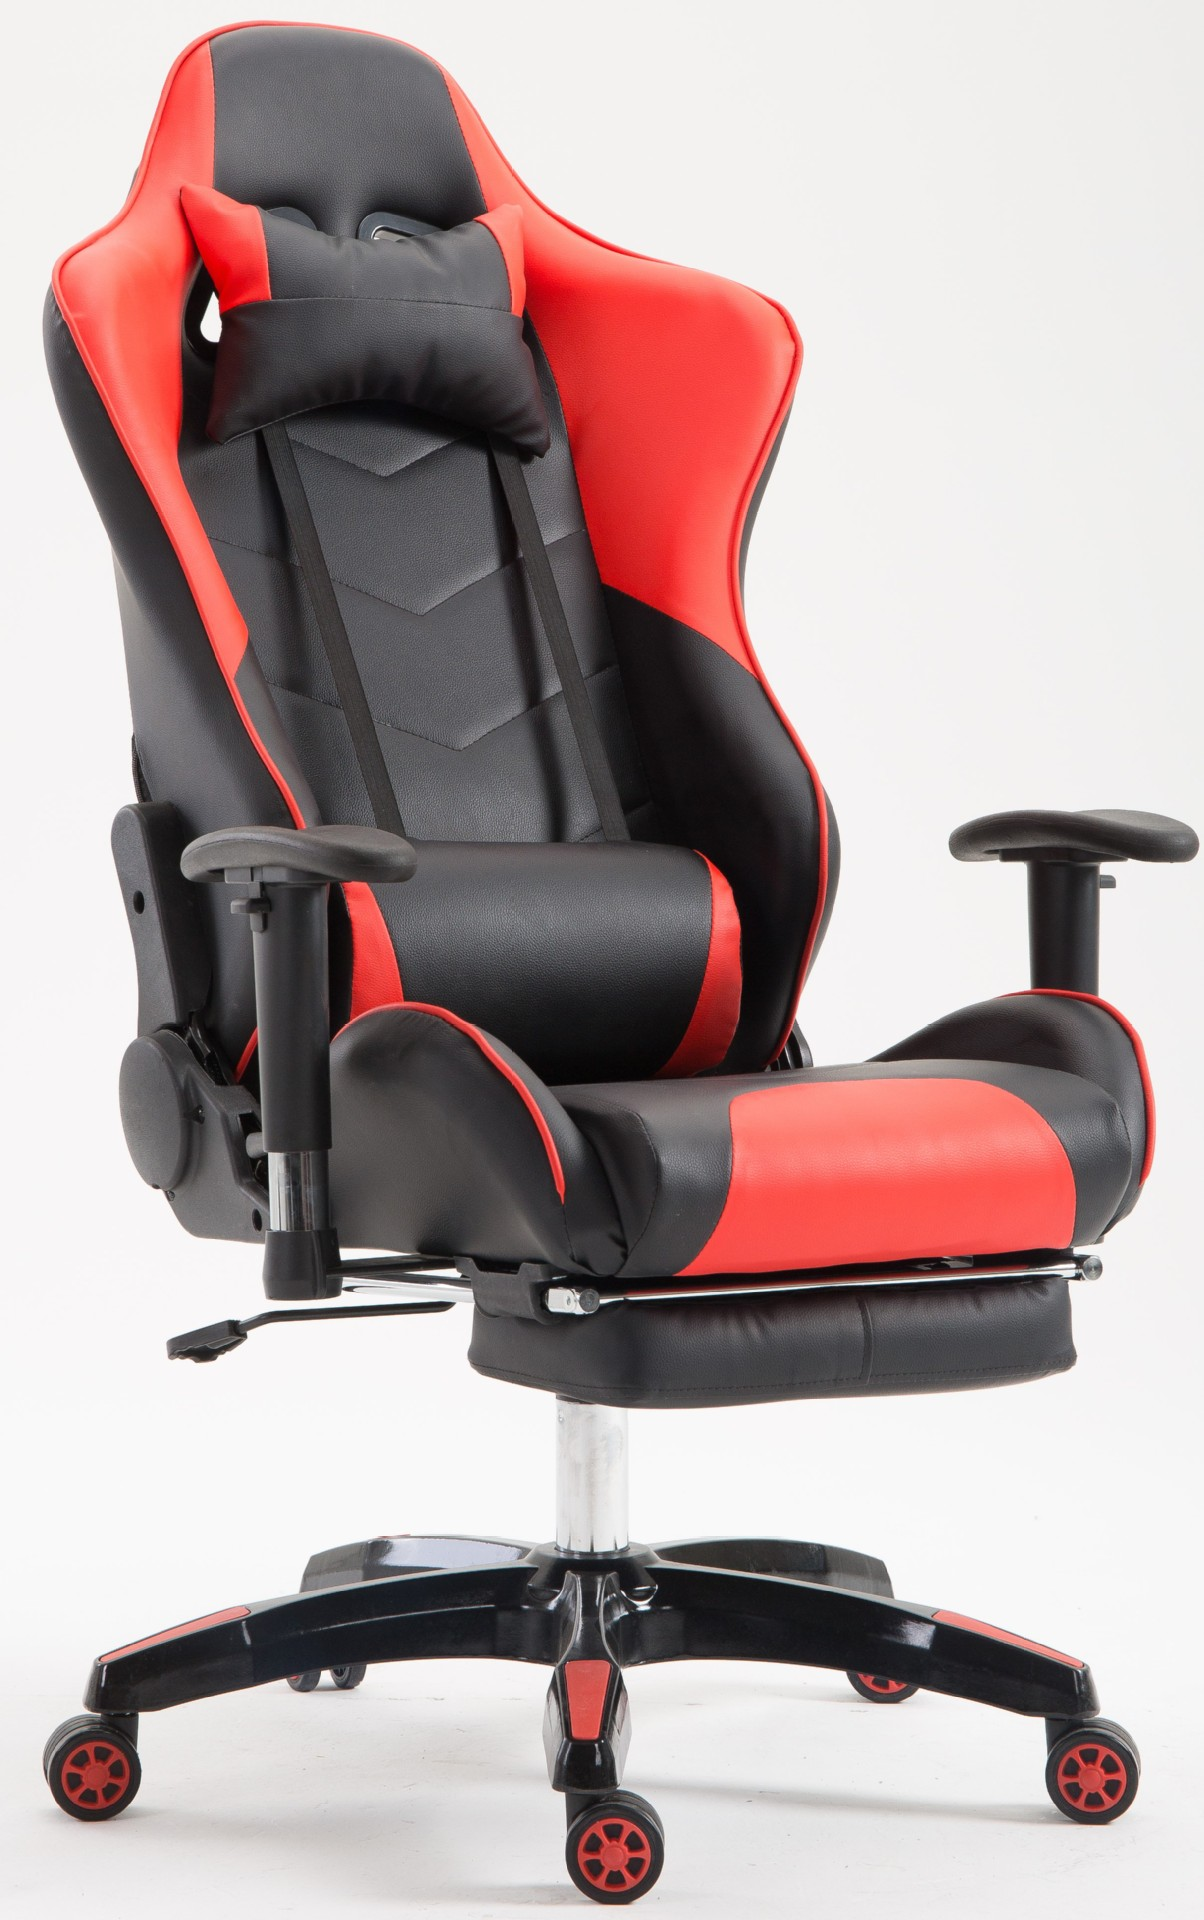 carbon fiber leather 180 reclining gaming chairs with footrest